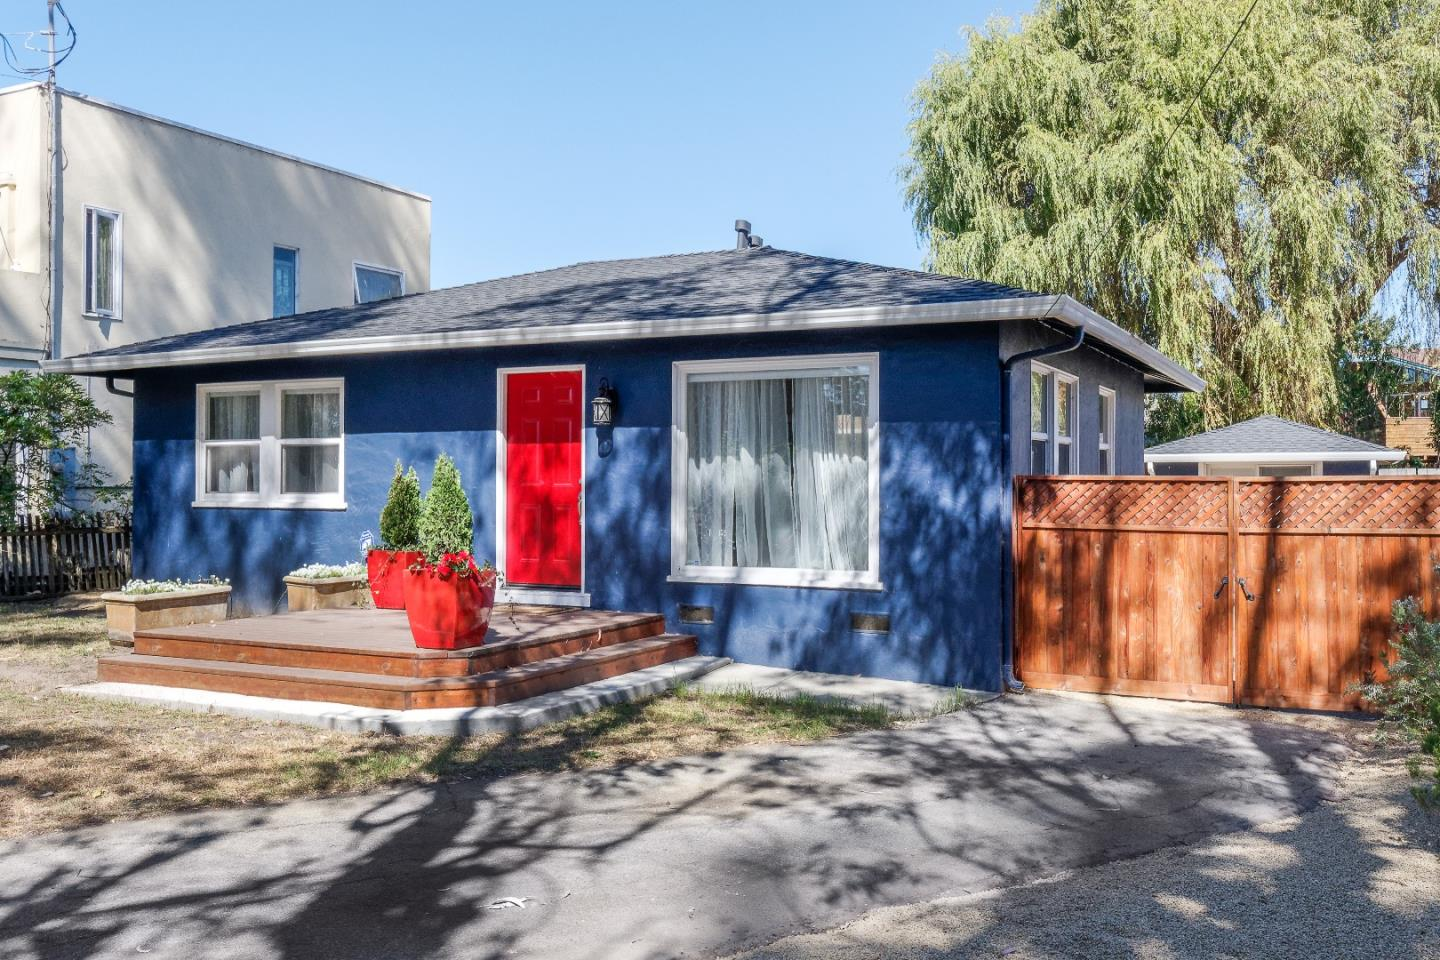 Come see this perfect beach bungalow.  Just a block from Steamer's Lane. A walk across the street to Lighthouse Field and all Santa Cruz has to offer.  Easy bike ride to downtown, Swift Street Courtyard, coffee shops, New Leaf Market and much more. Must see!